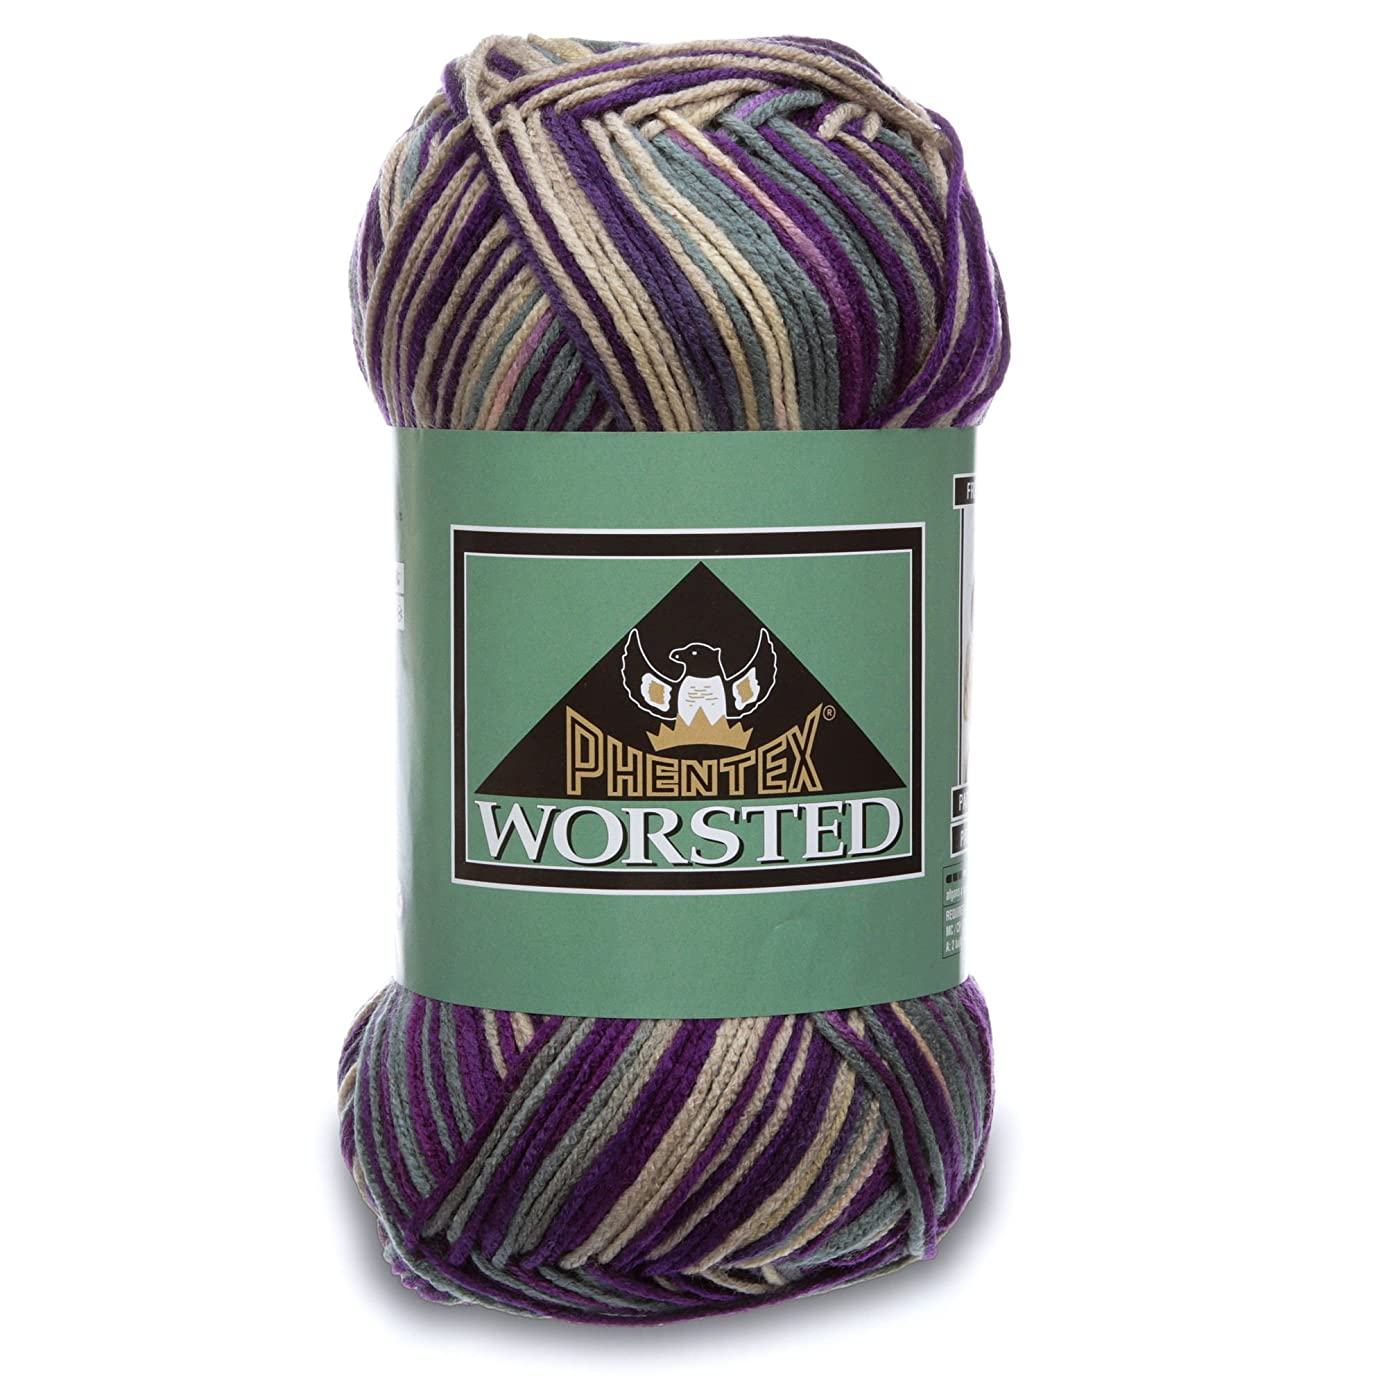 Phentex Worsted Big Ball Yarn, 10.5 Ounce, Ombre Intrigue, Single Ball